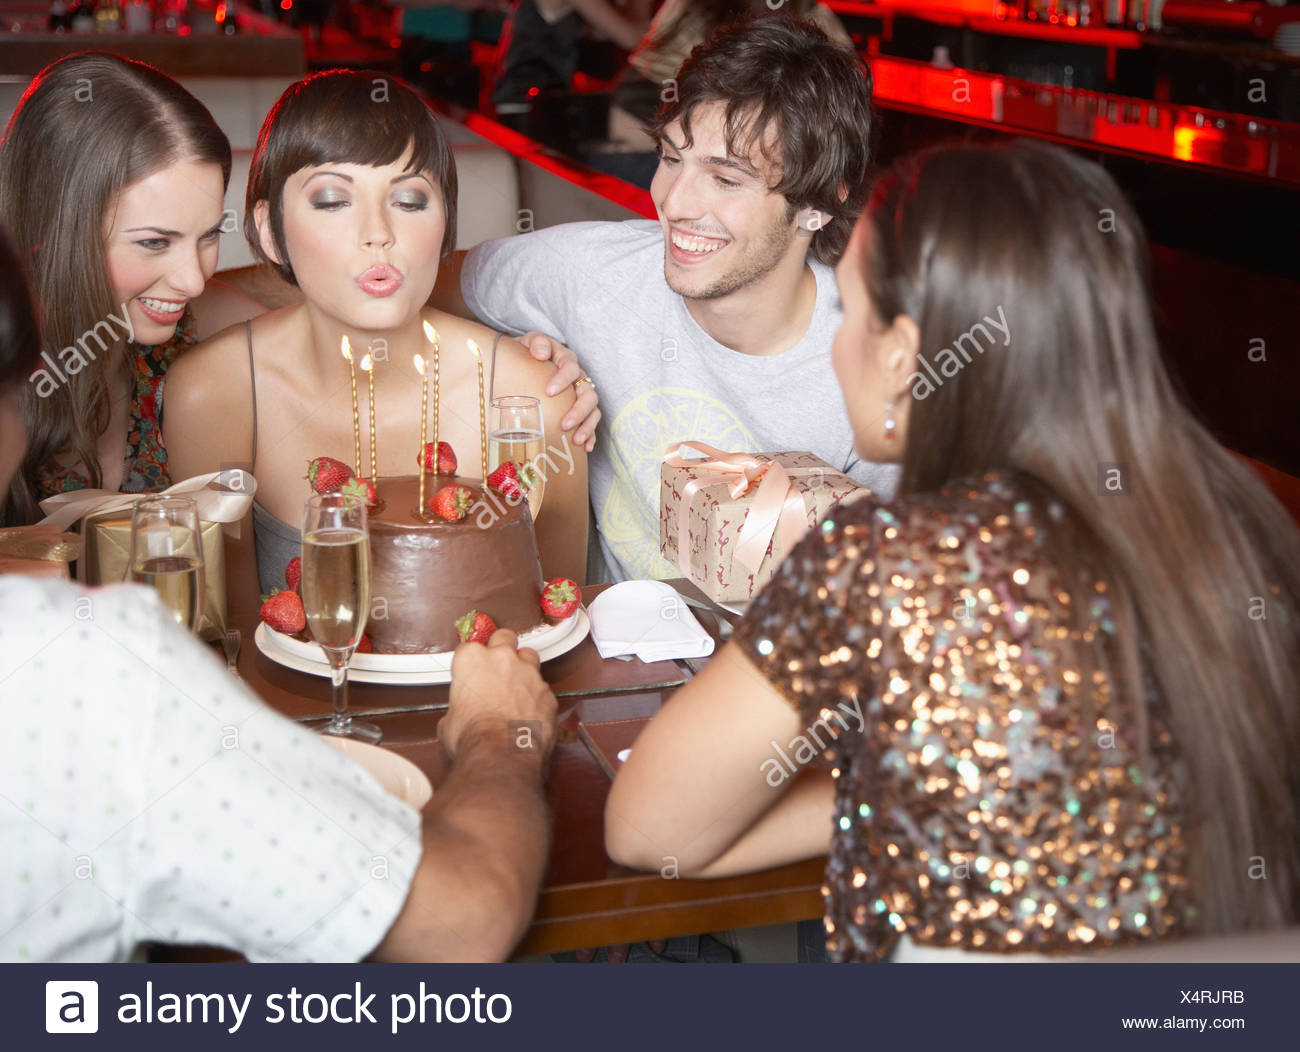 five people having fun and smiling at a birthday party in a restaurant - Stock Image